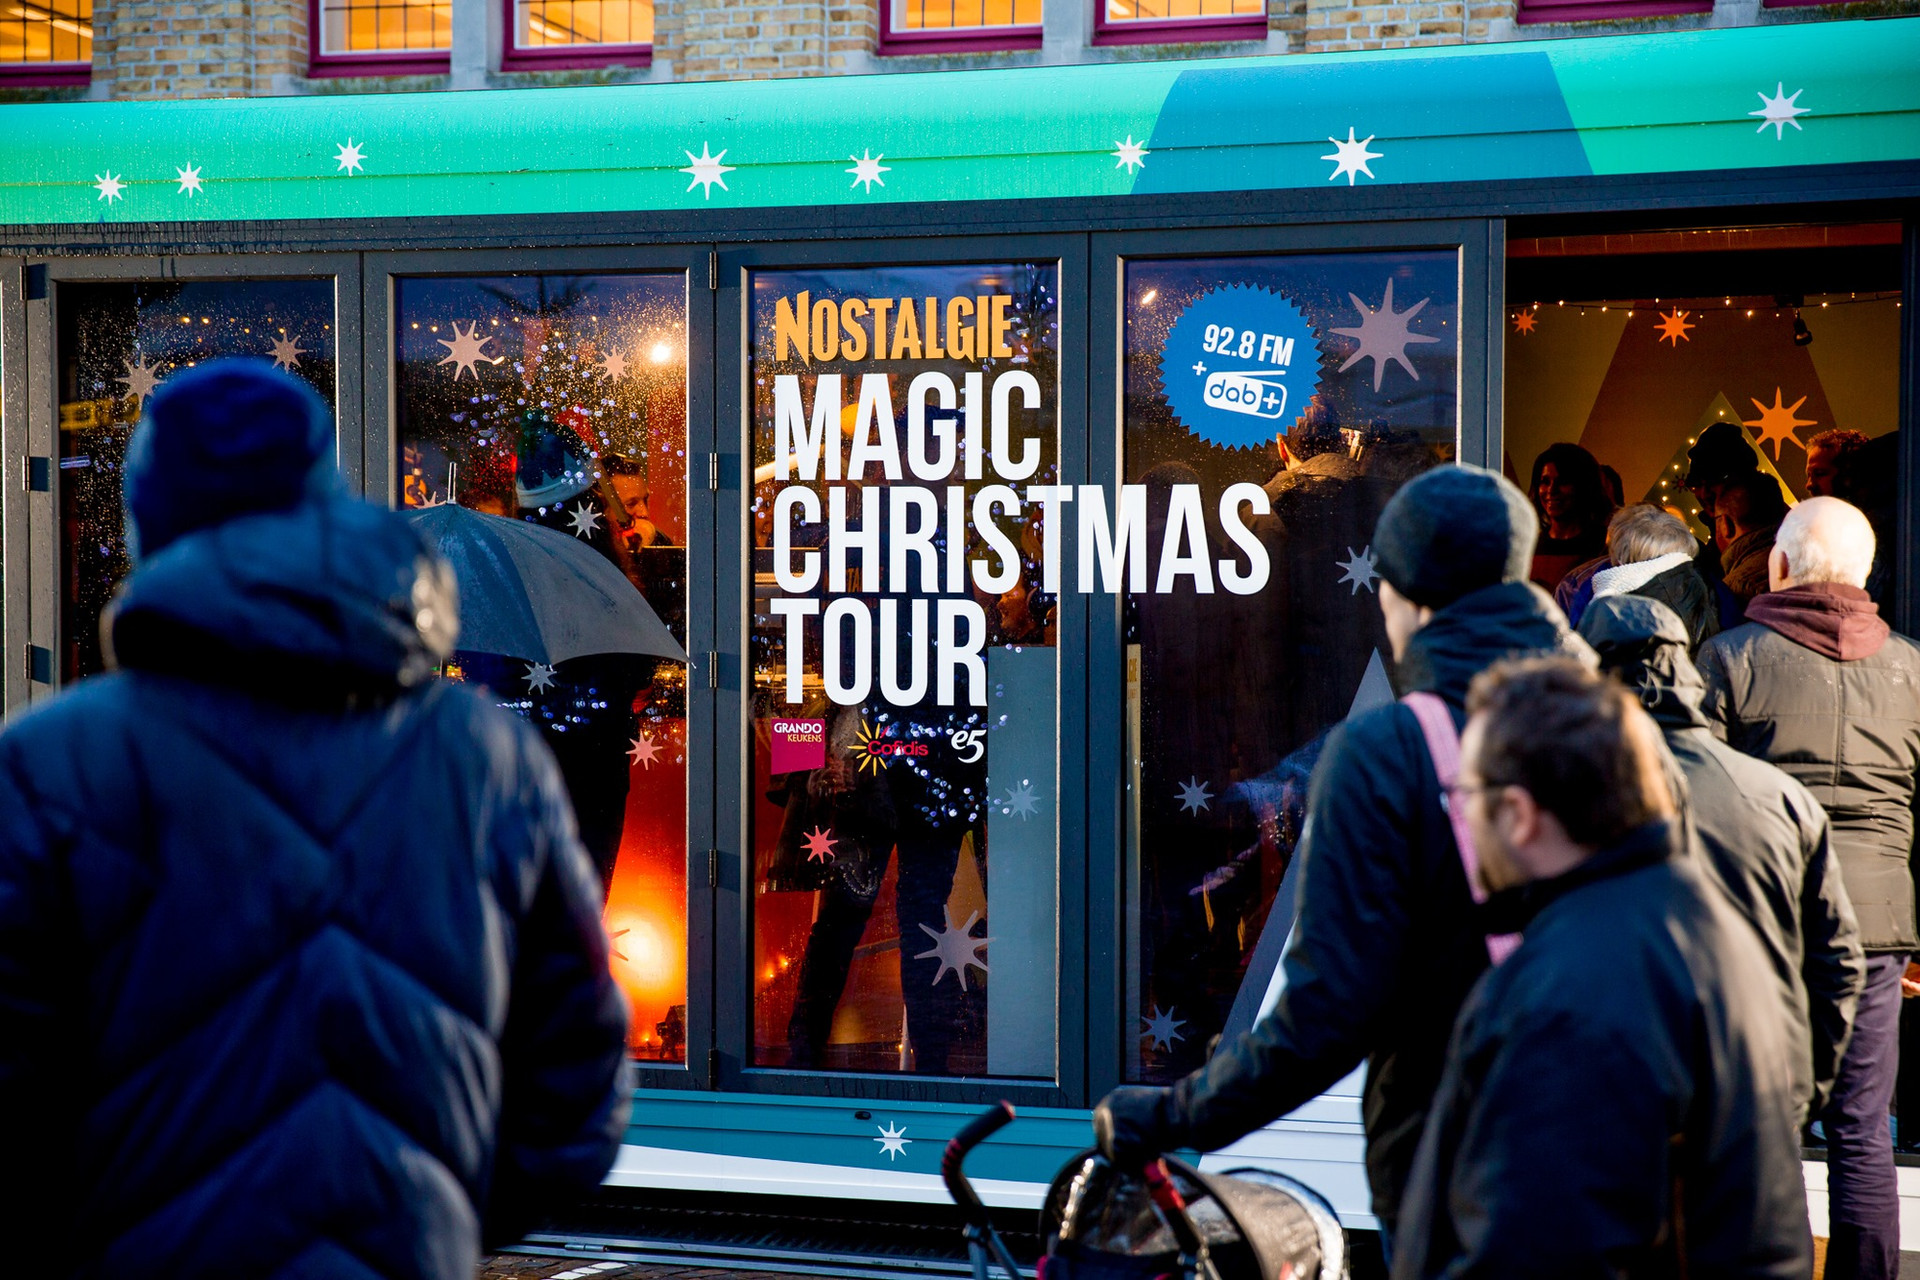 Nostalgie Christmas Tour